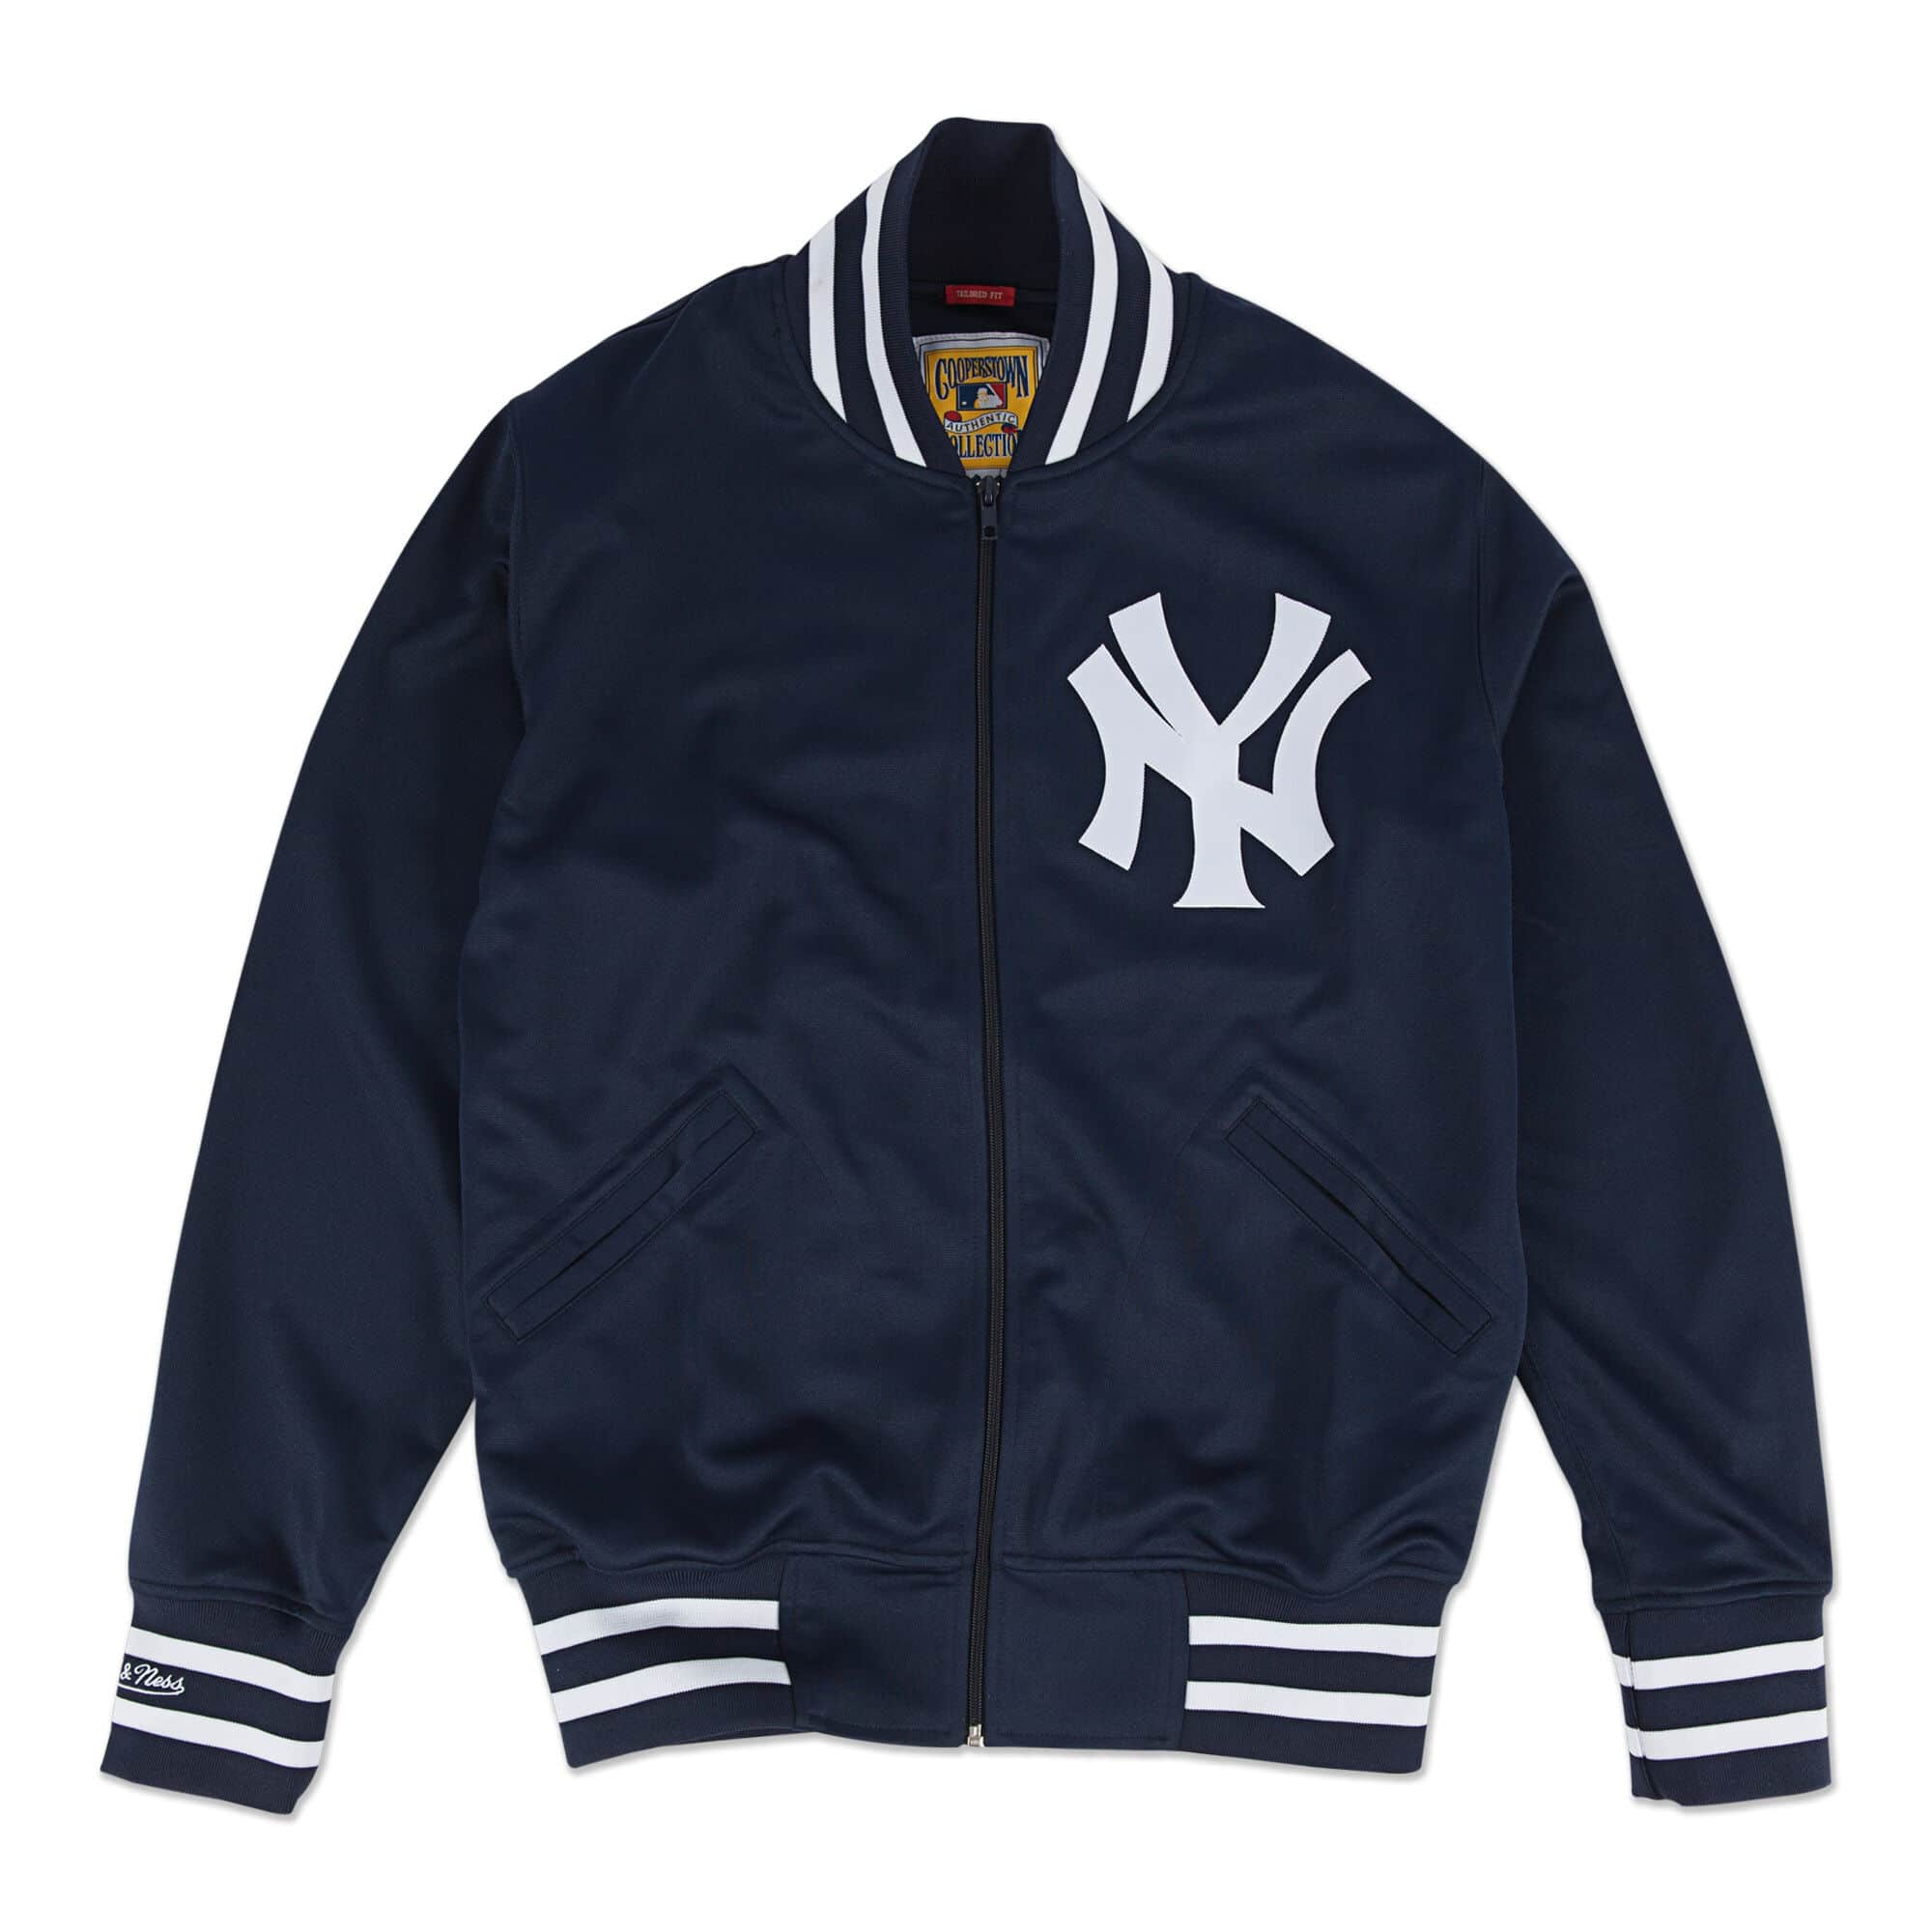 Authentic BP Jacket New York Yankees 1988